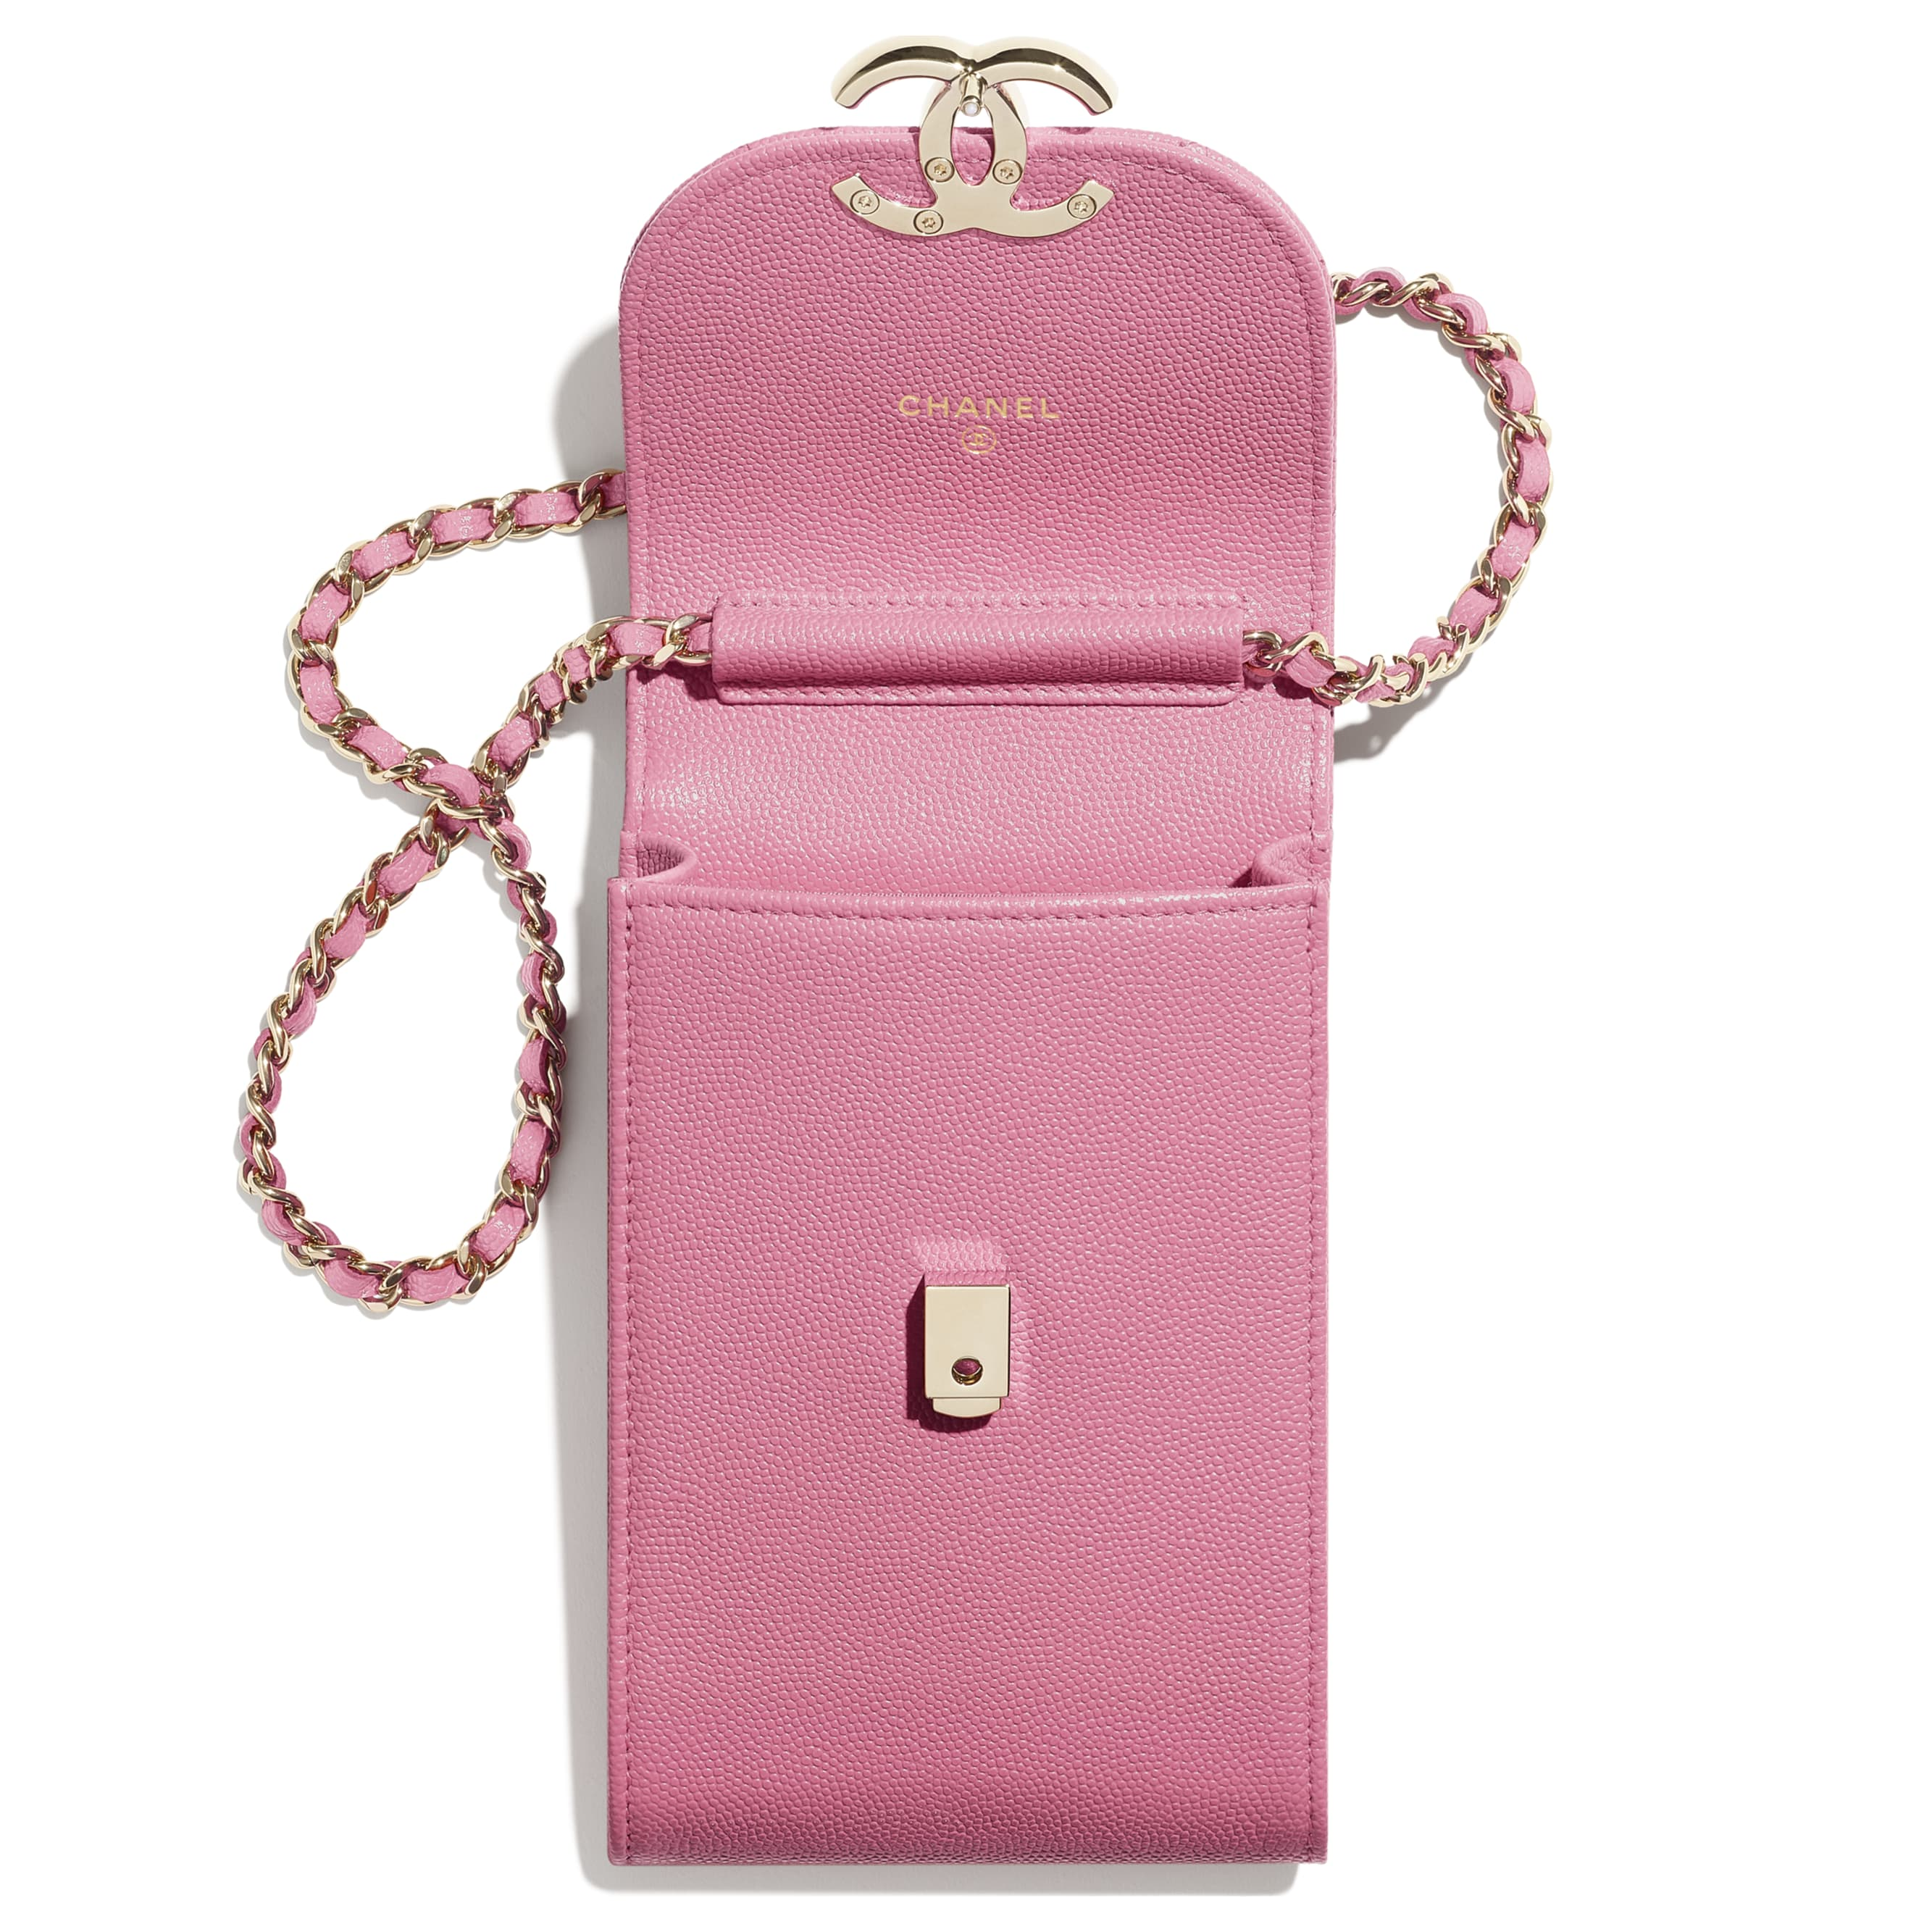 Phone Holder with Chain - Pink - Grained Calfskin & Gold-Tone Metal - CHANEL - Alternative view - see standard sized version